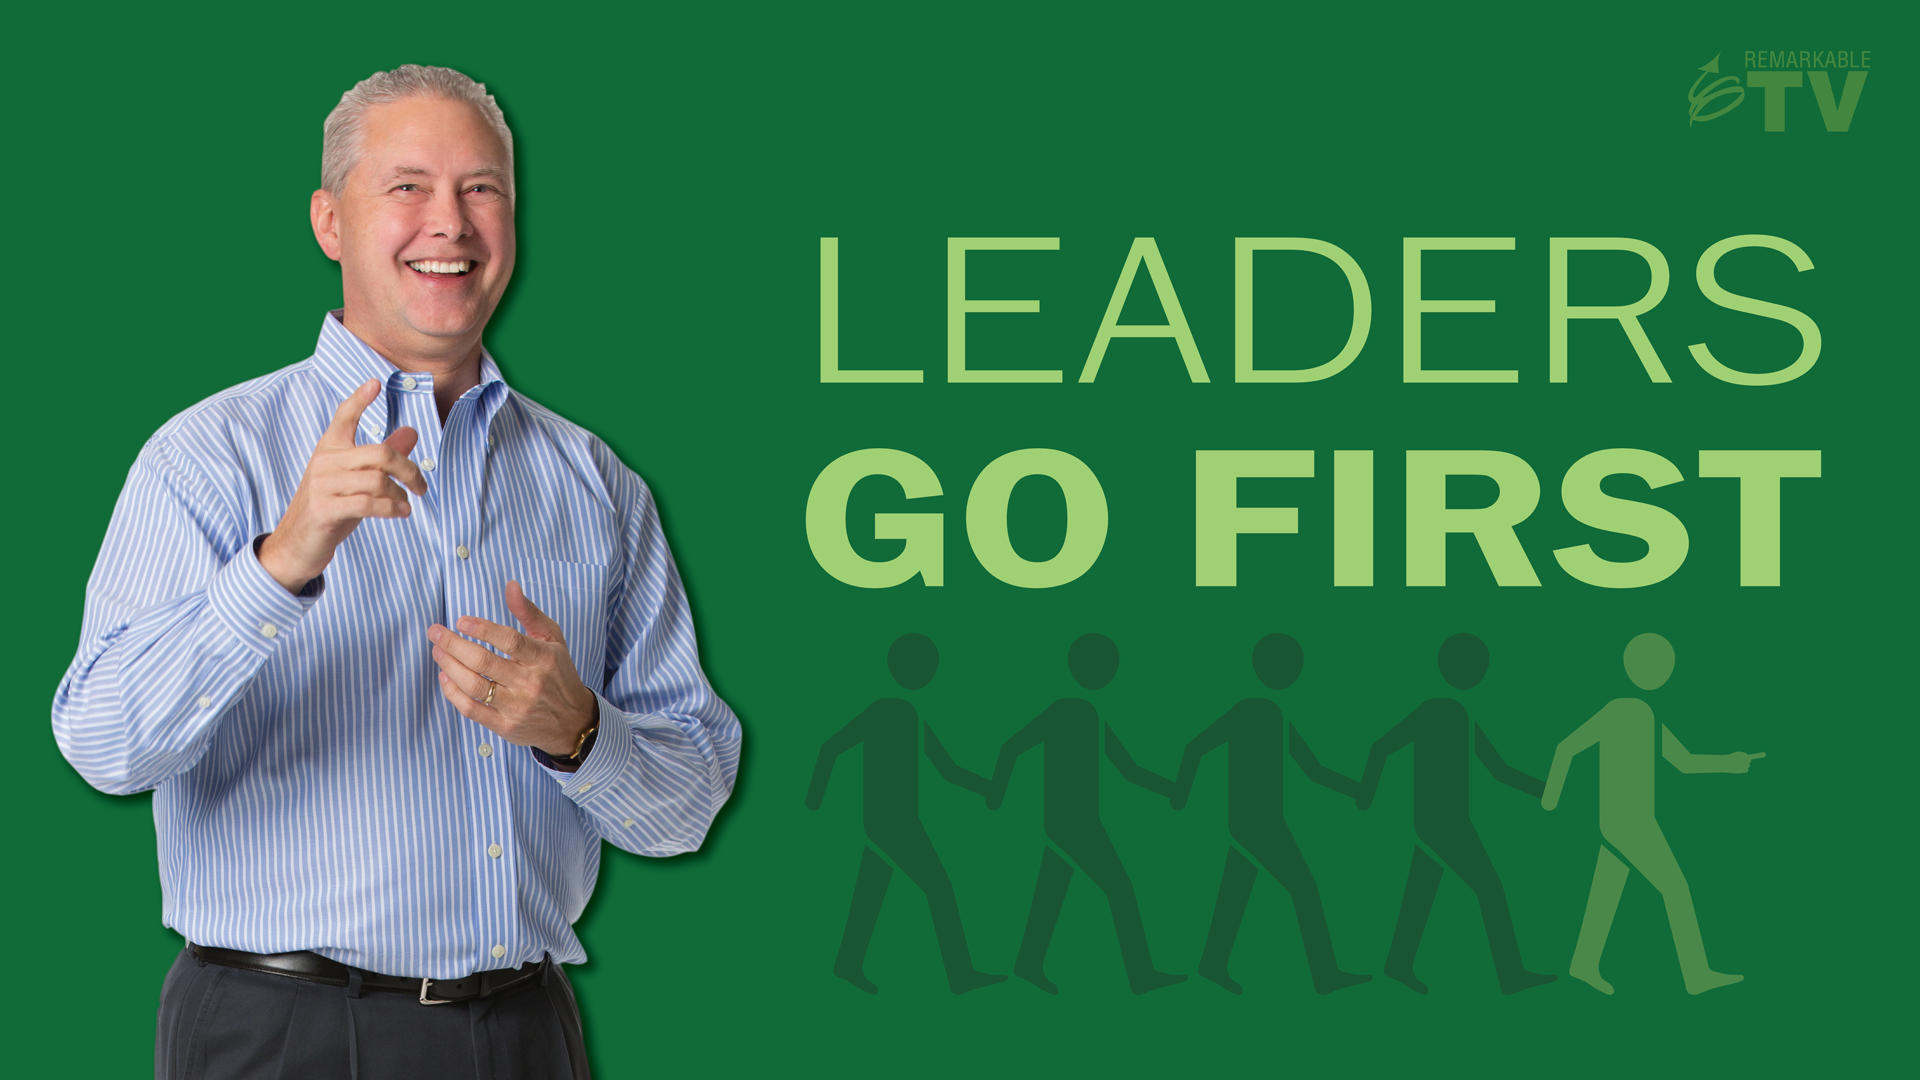 Leaders Go First - Kevin Eikenberry